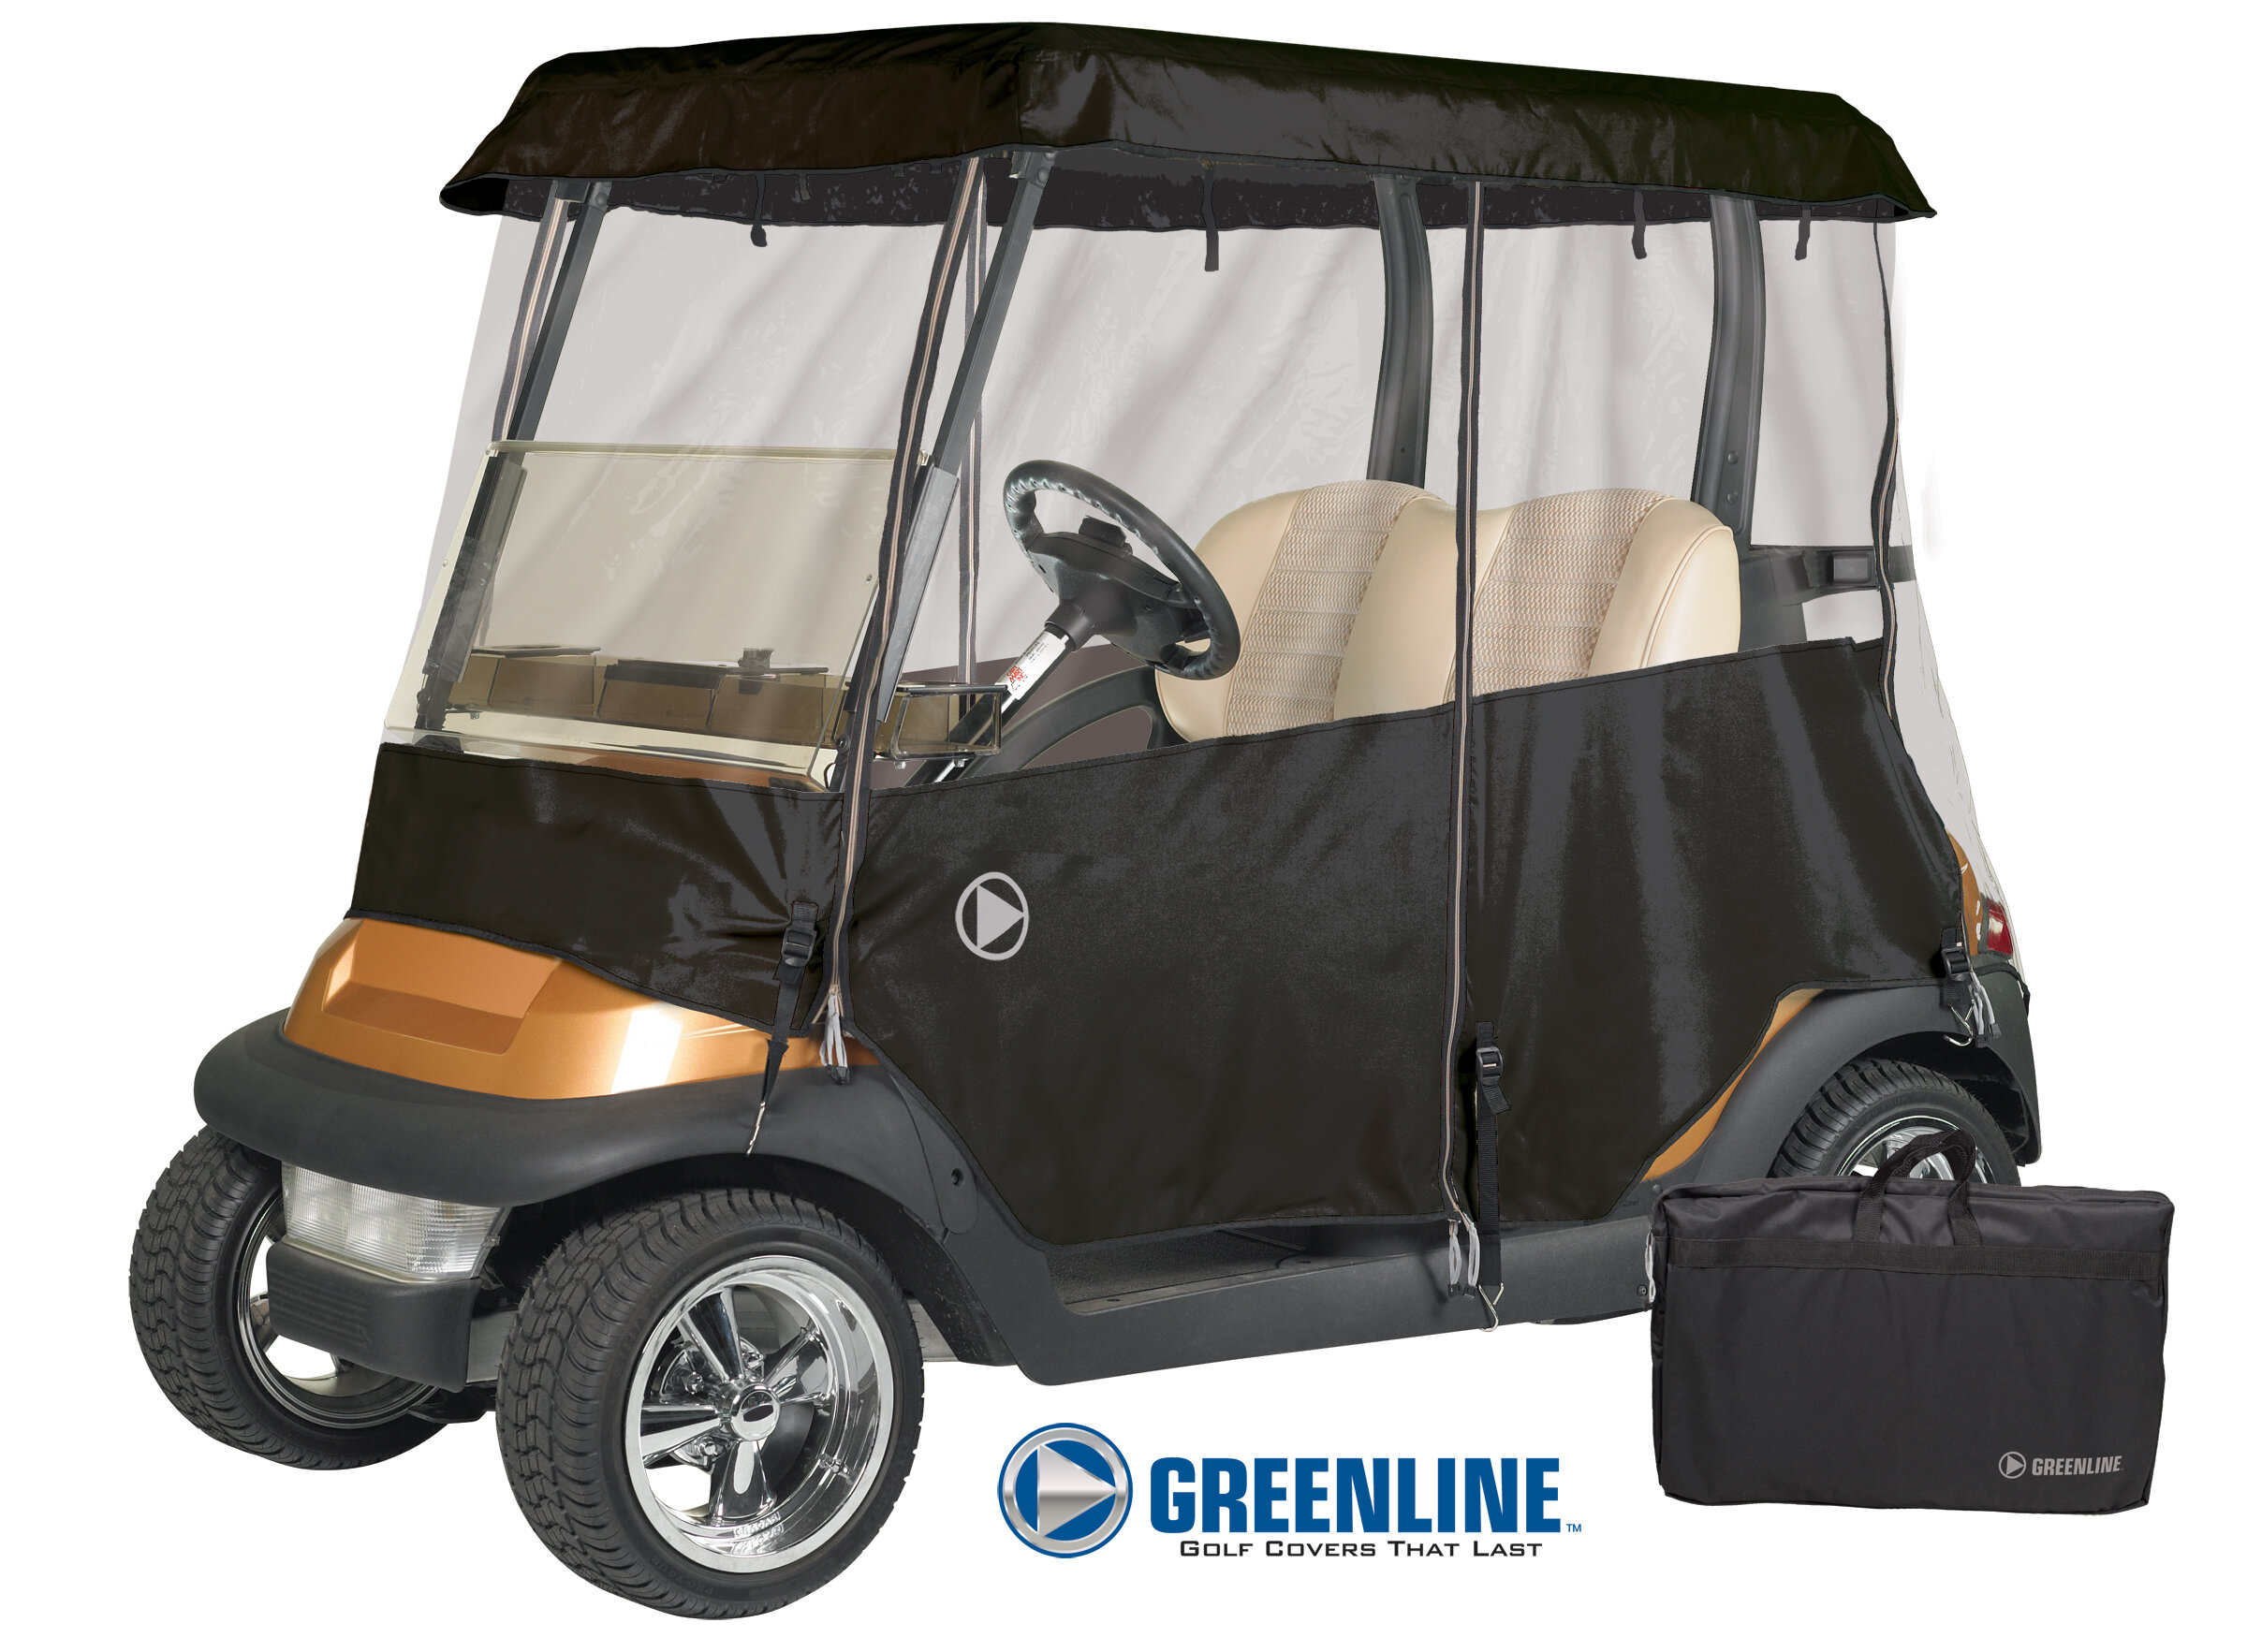 Eevelle Greenline Golf Cart Cover & Reviews | Wayfair on upholstery for trucks, upholstery for vehicles, upholstery for tractors,